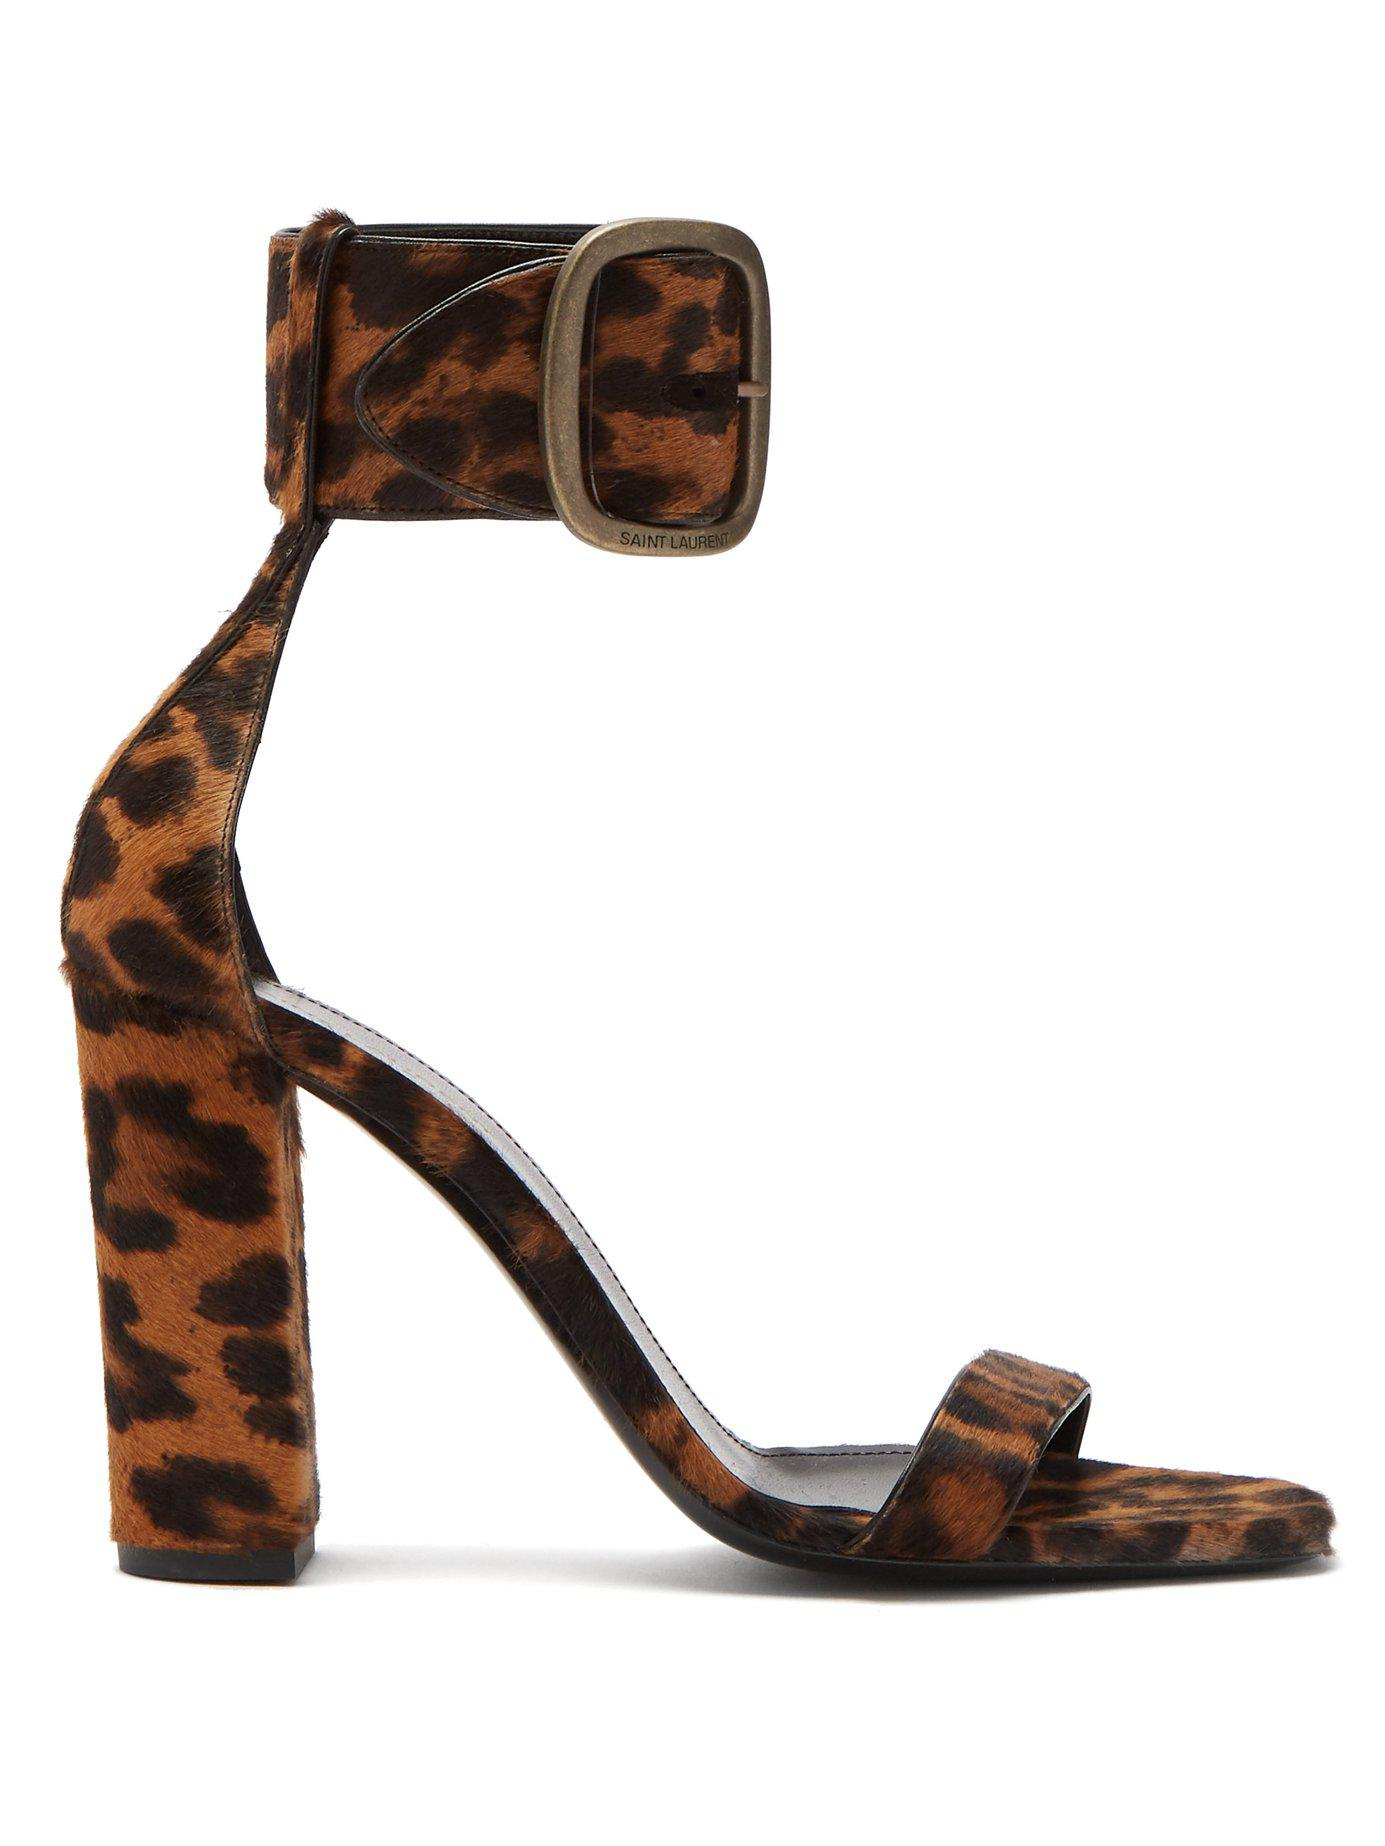 62052c9fefc Lyst - Saint Laurent Loulou Buckled Leopard Print Sandals in Brown